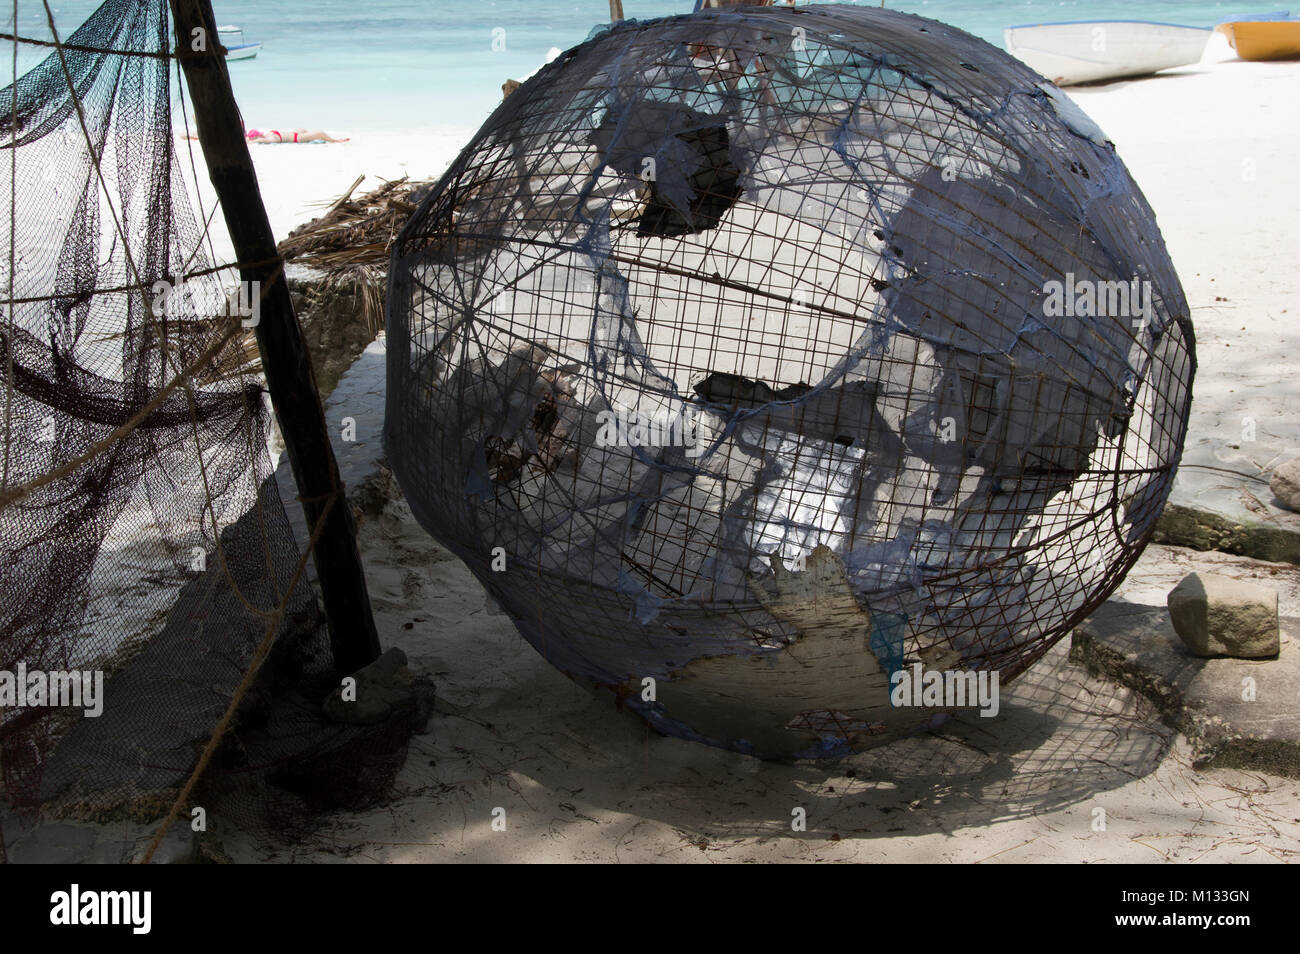 Metal sculpture of the world, the globe, laying on its side in the sun on Nungwi beach in Zanzibar, Tanzania with - Stock Image